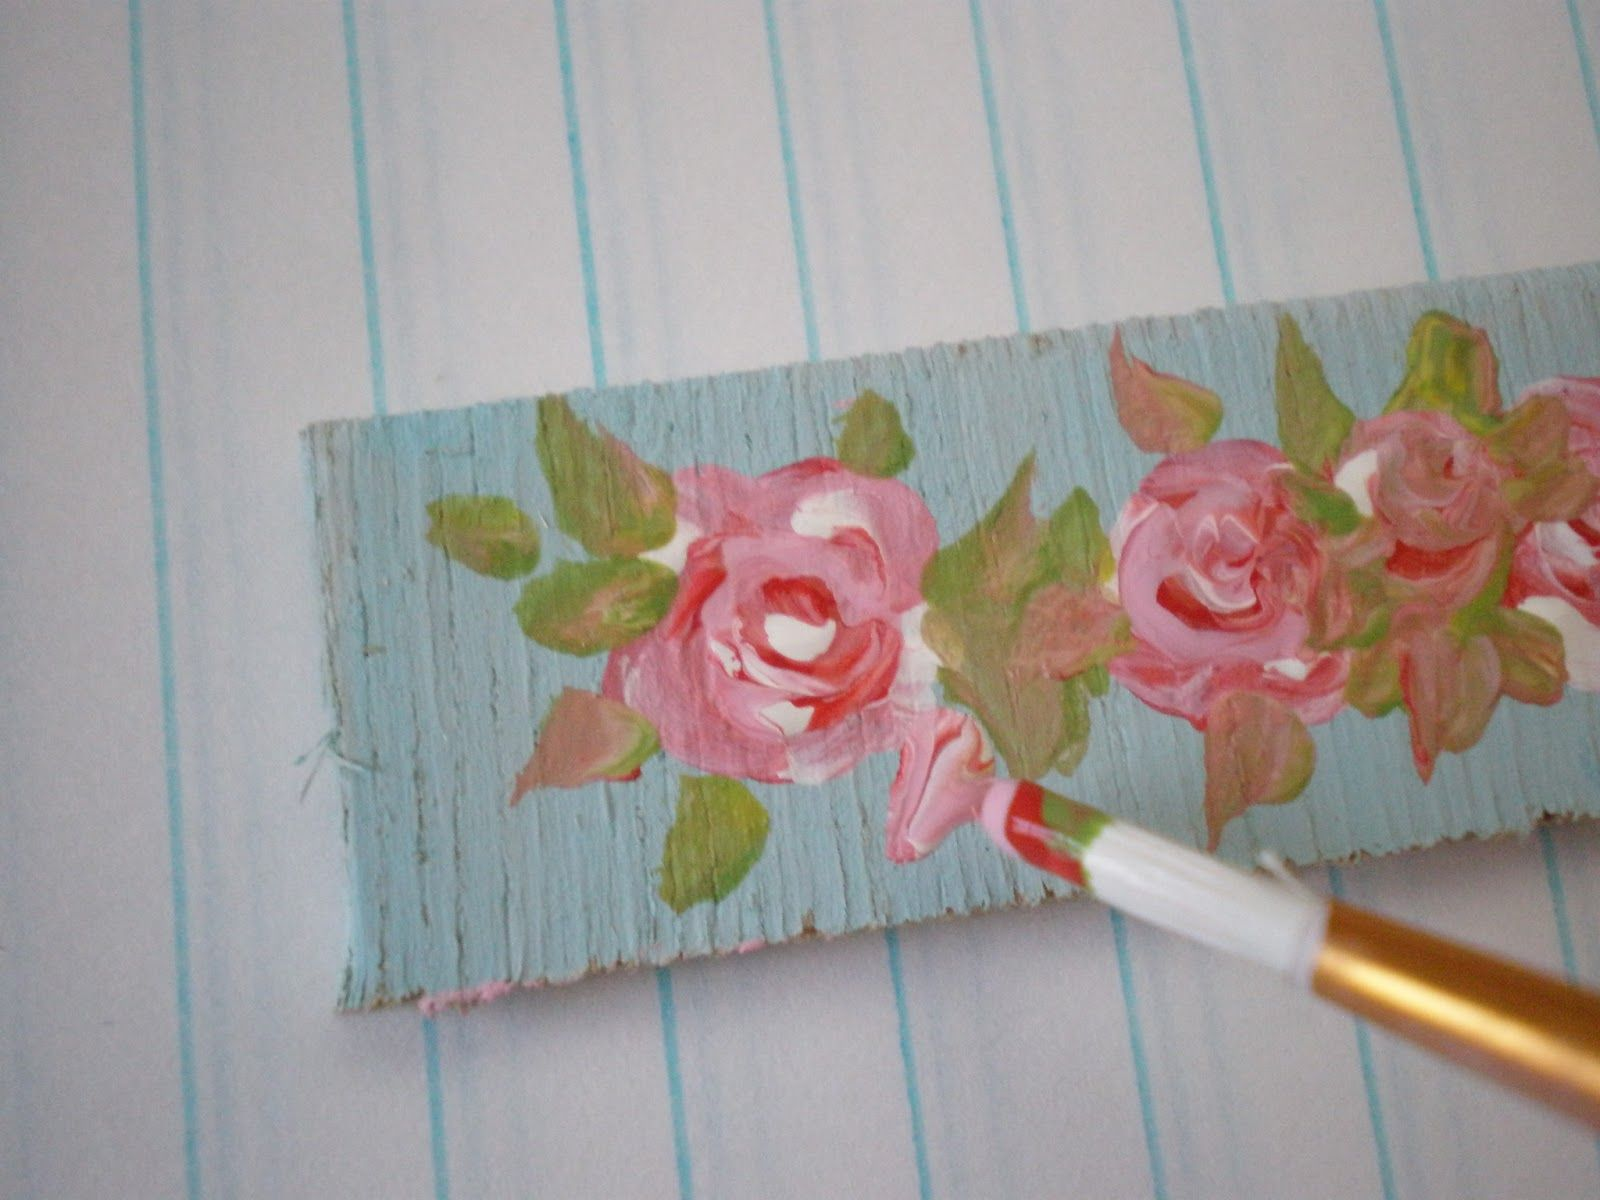 How to paint shabby chic roses on plaques | crafts ...